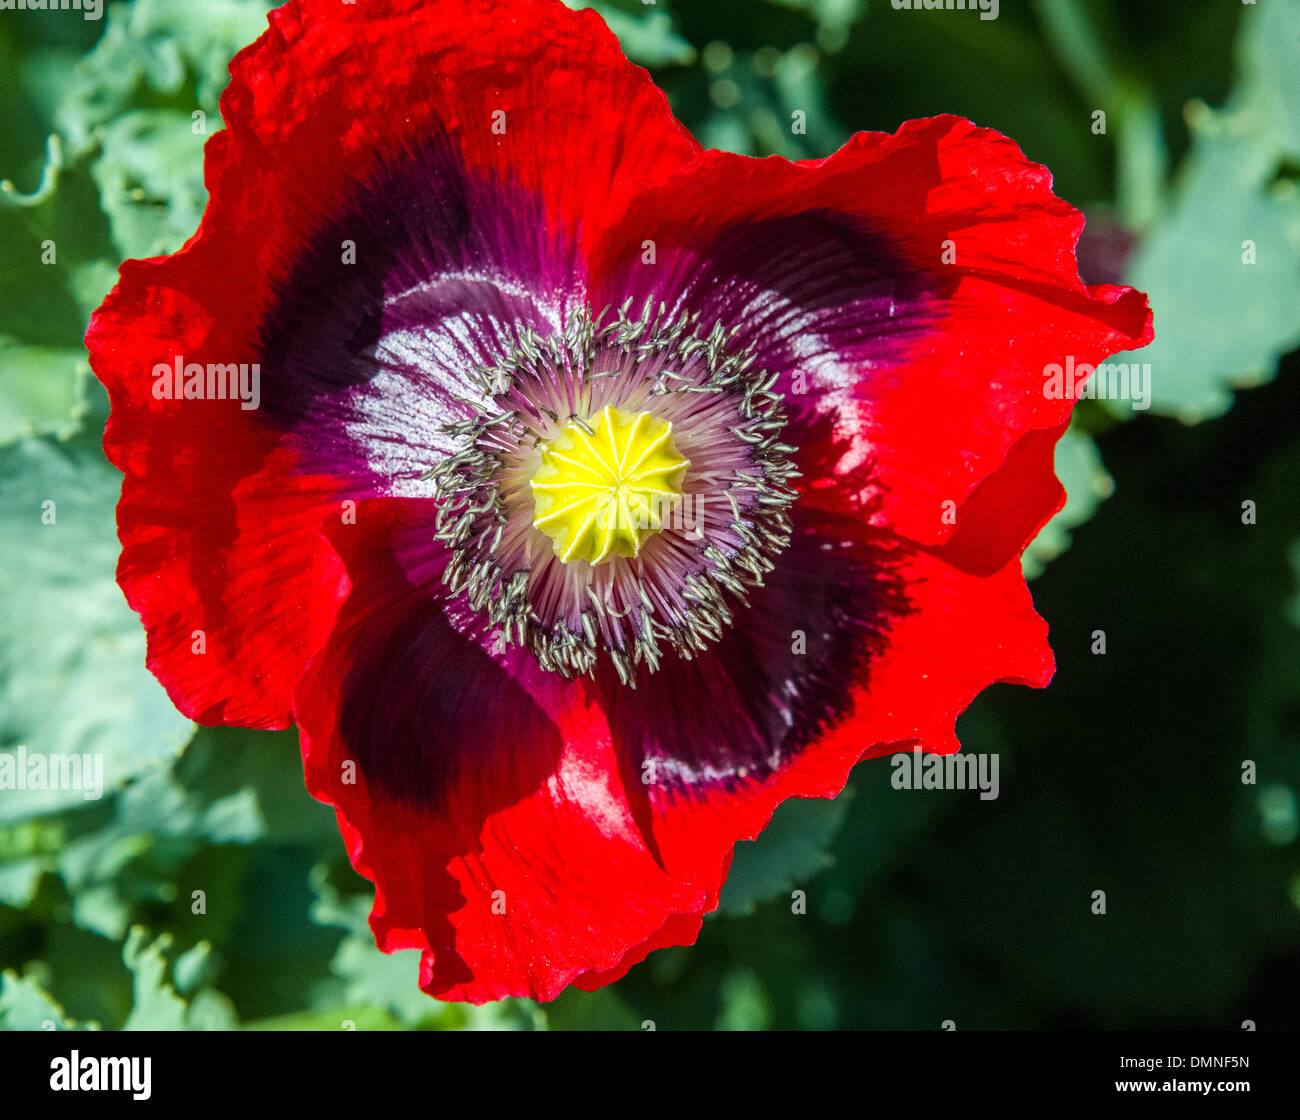 Red poppy flowers and poppy pods in natural growing garden outdoor red poppy flowers and poppy pods in natural growing garden outdoor garden natural light shots crowns of poppies without flowers mightylinksfo